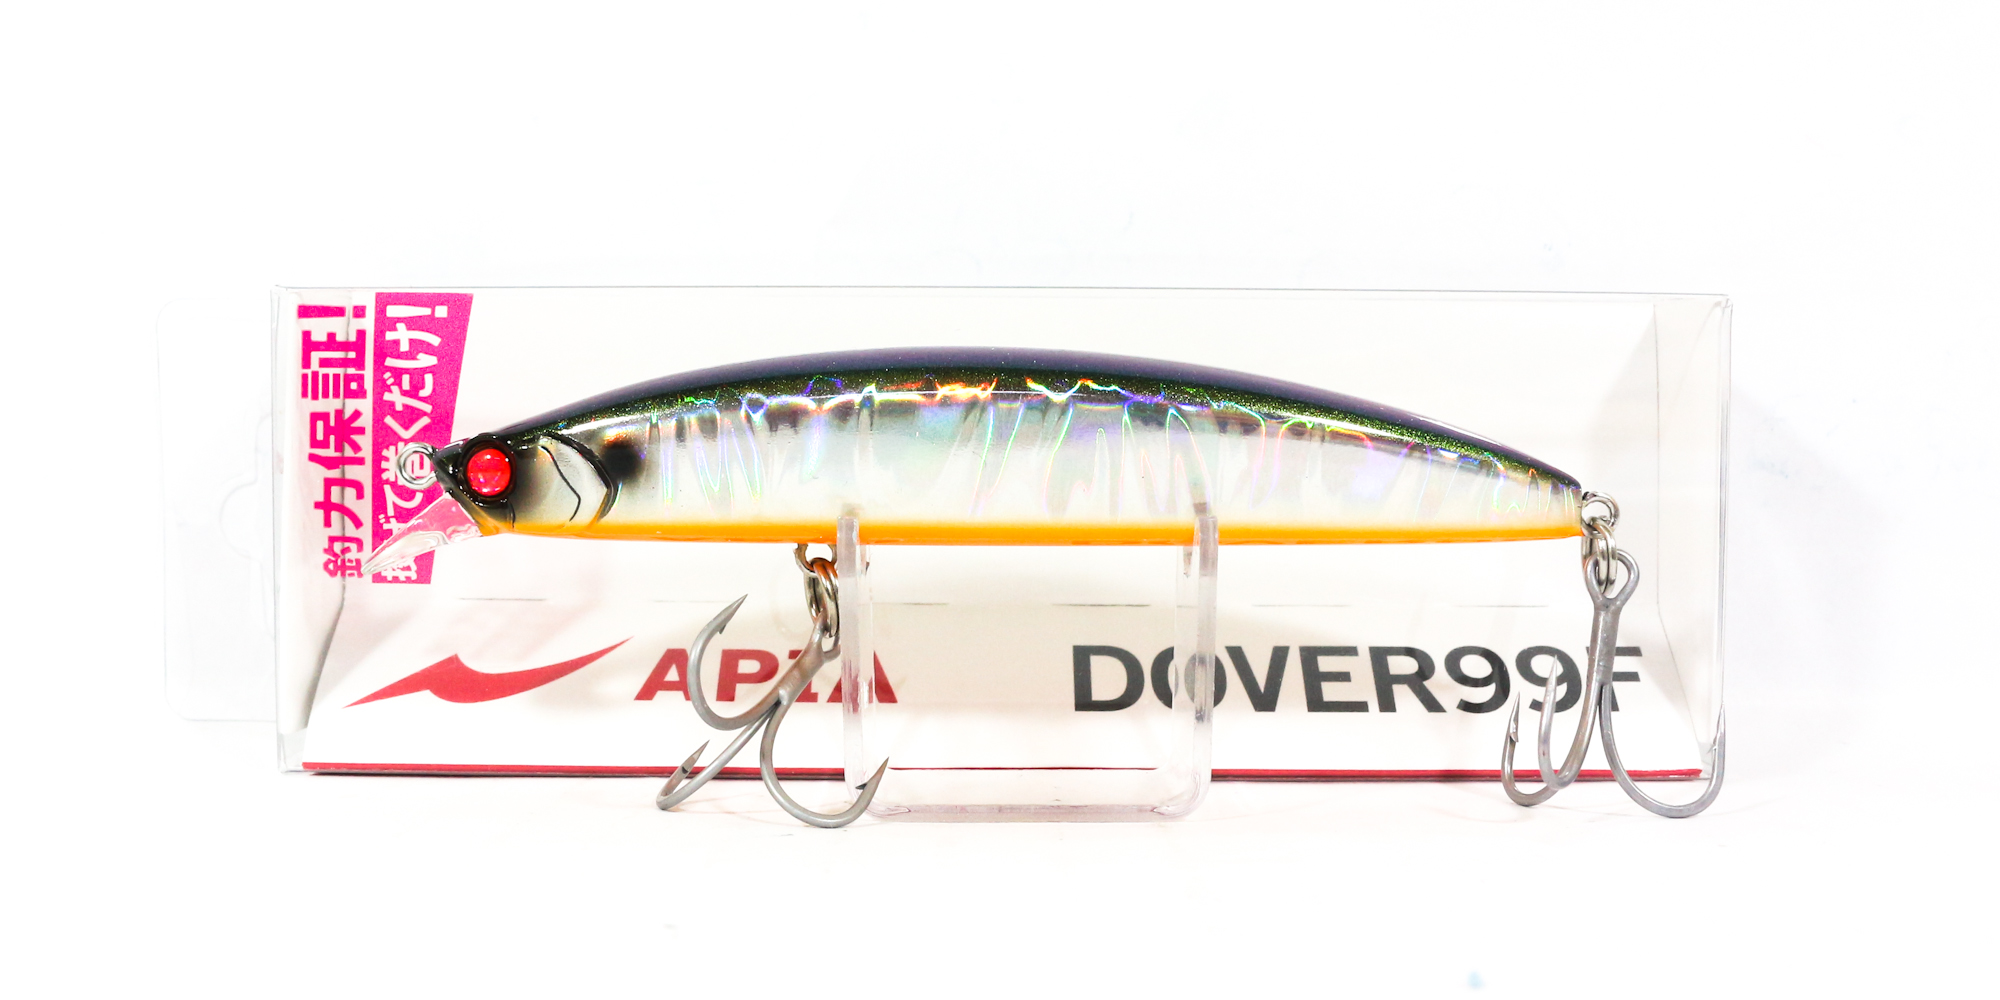 Apia Dover 99 F Floating Lure 07 (1437)